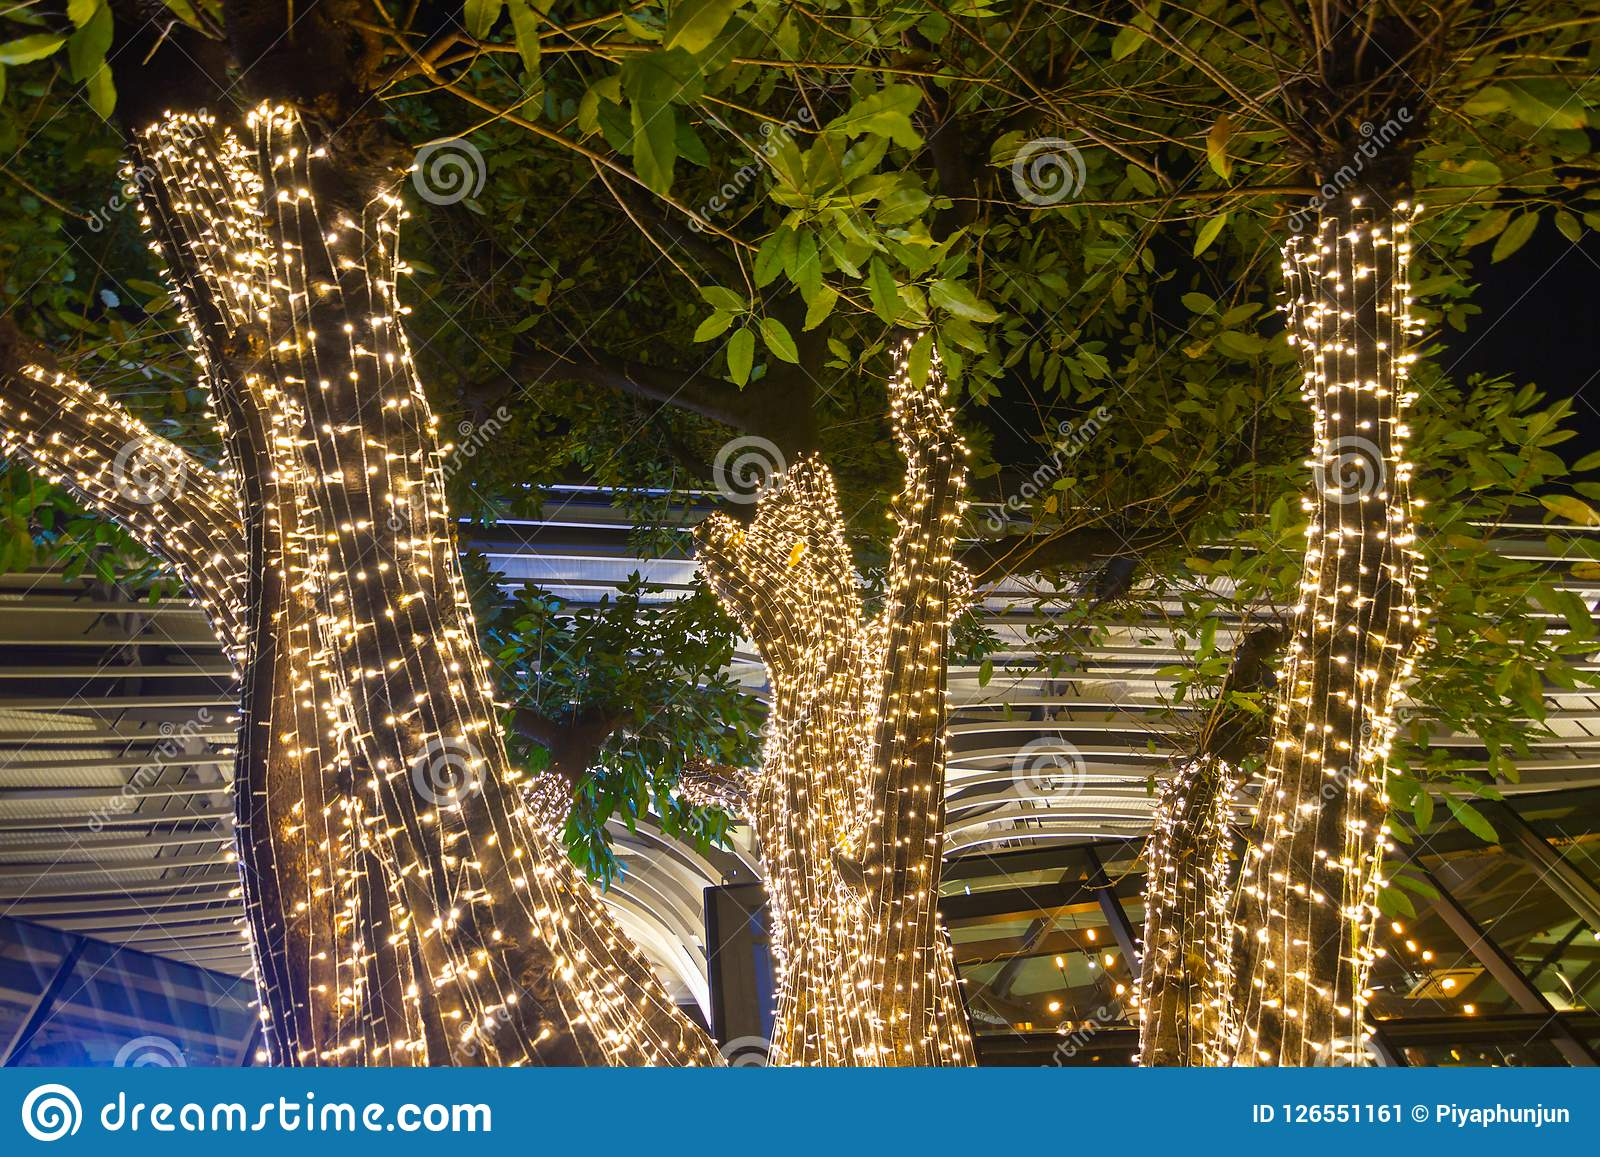 Decorative Outdoor String Lights Hanging On Tree In The Garden At ...